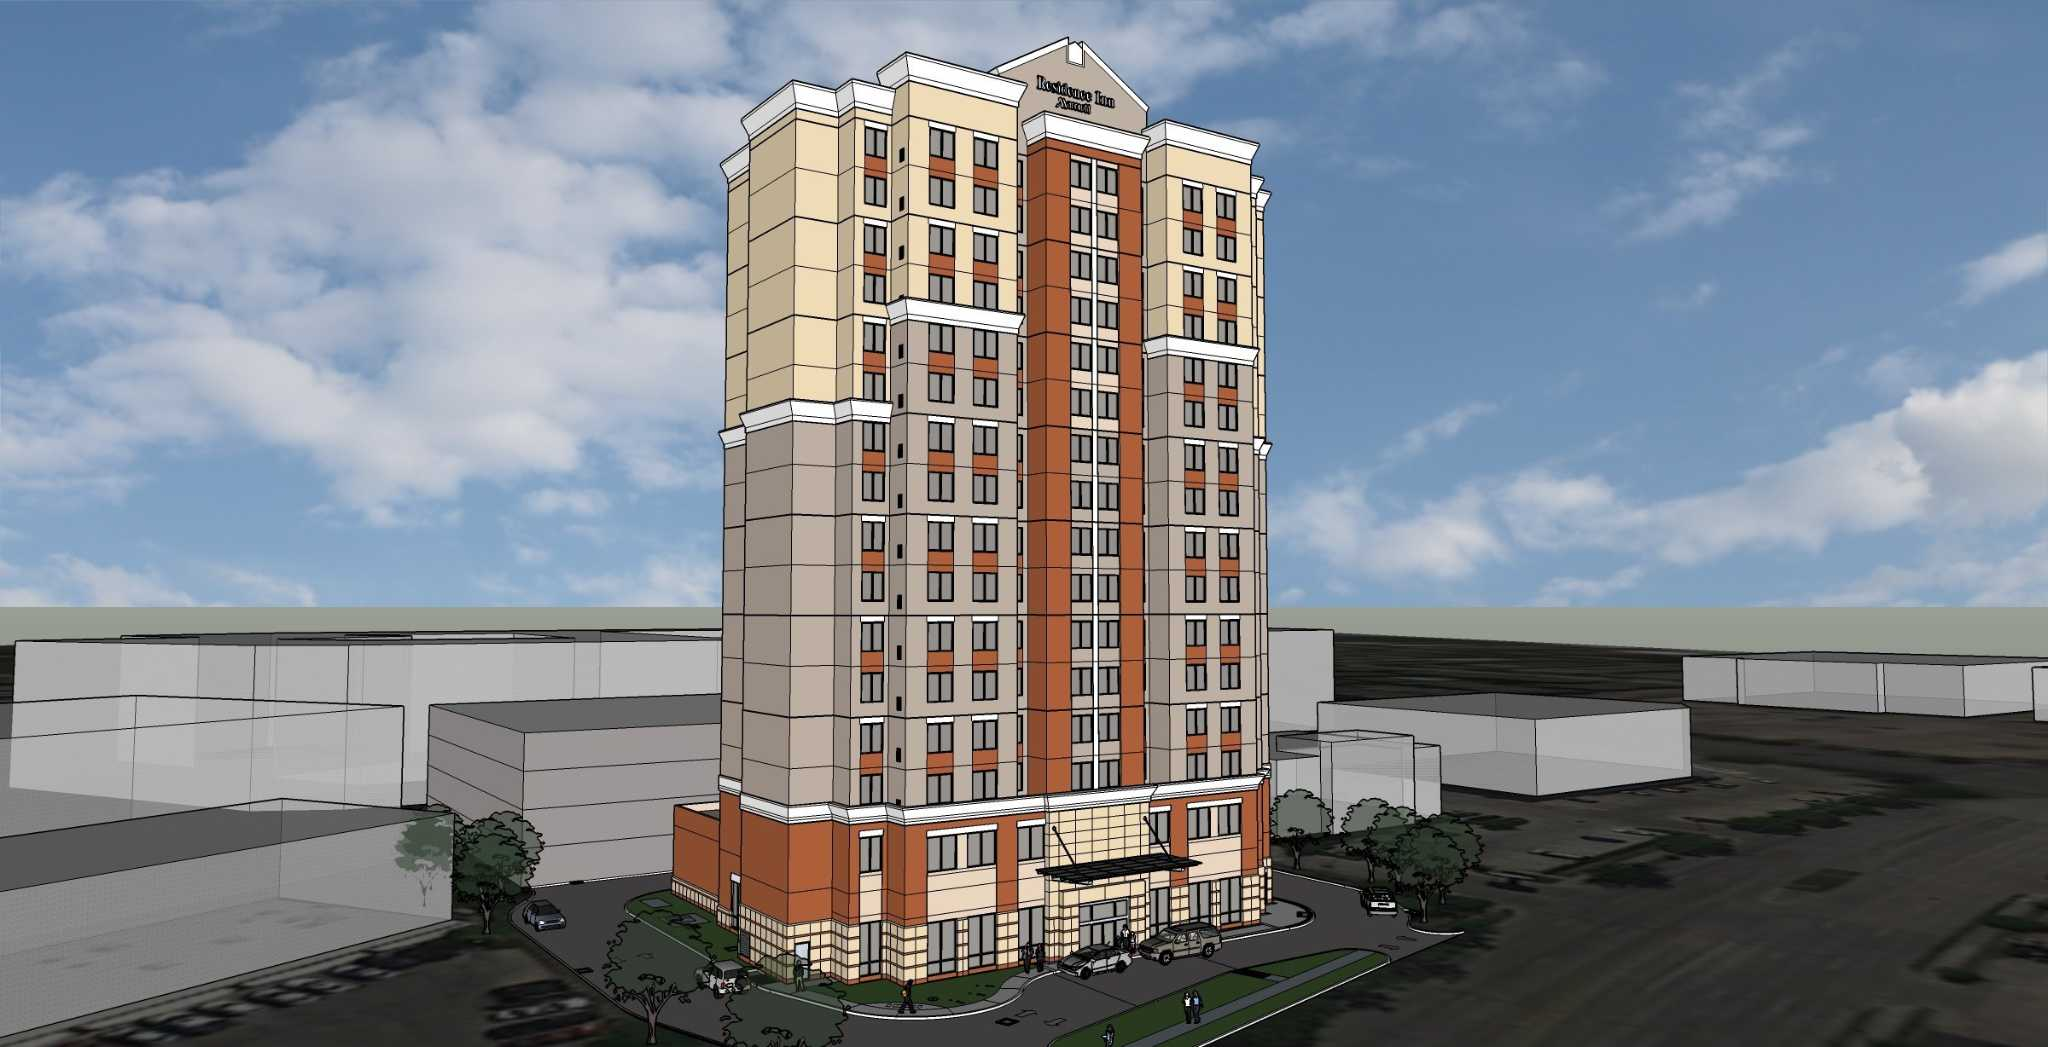 Moody National Starts Construction On 16 Story Residence